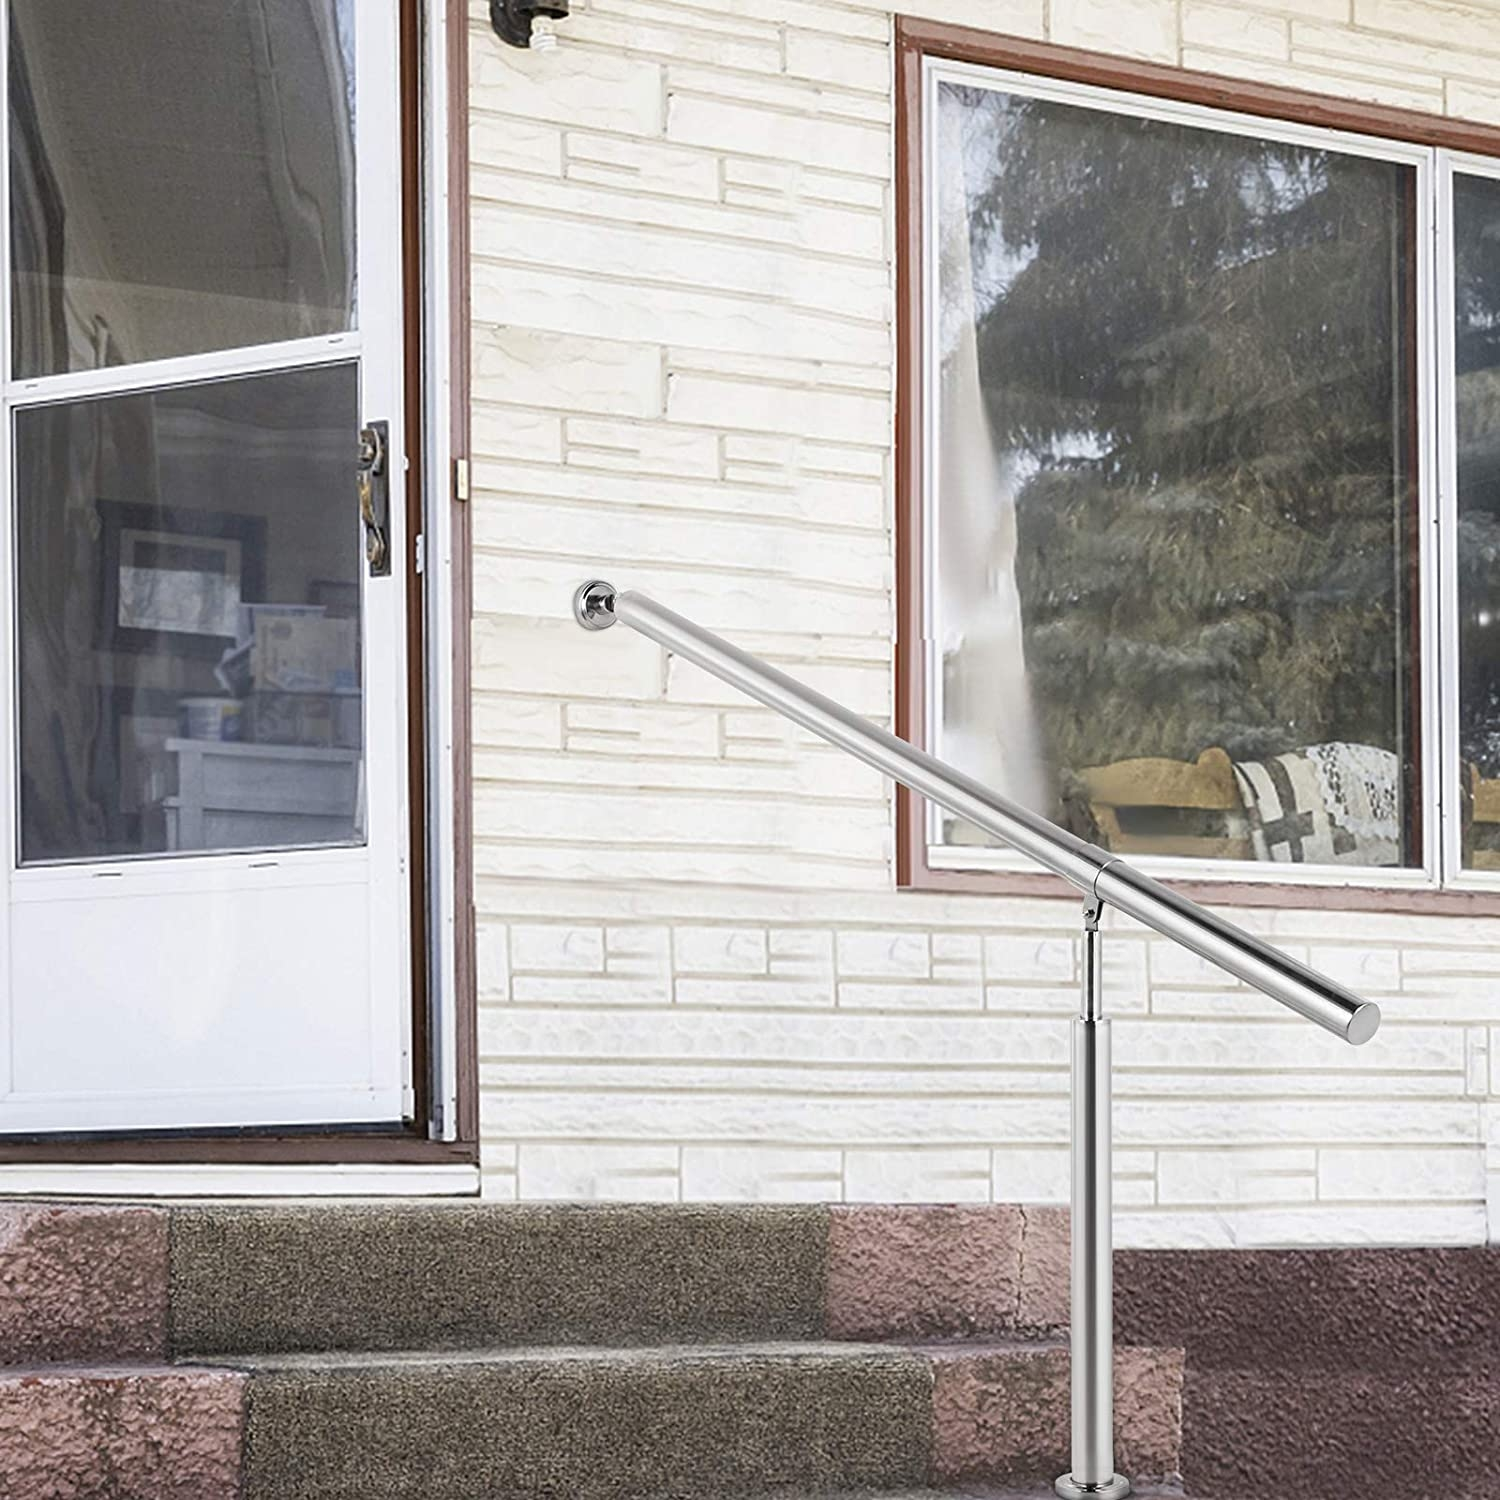 Happybuy Step Handrail Stainless Steel Stair Railing For In And   Ss Handrails For Stairs   Flat Steel   Mild Steel Handrail   Metal   Steel Railing   Commercial Building